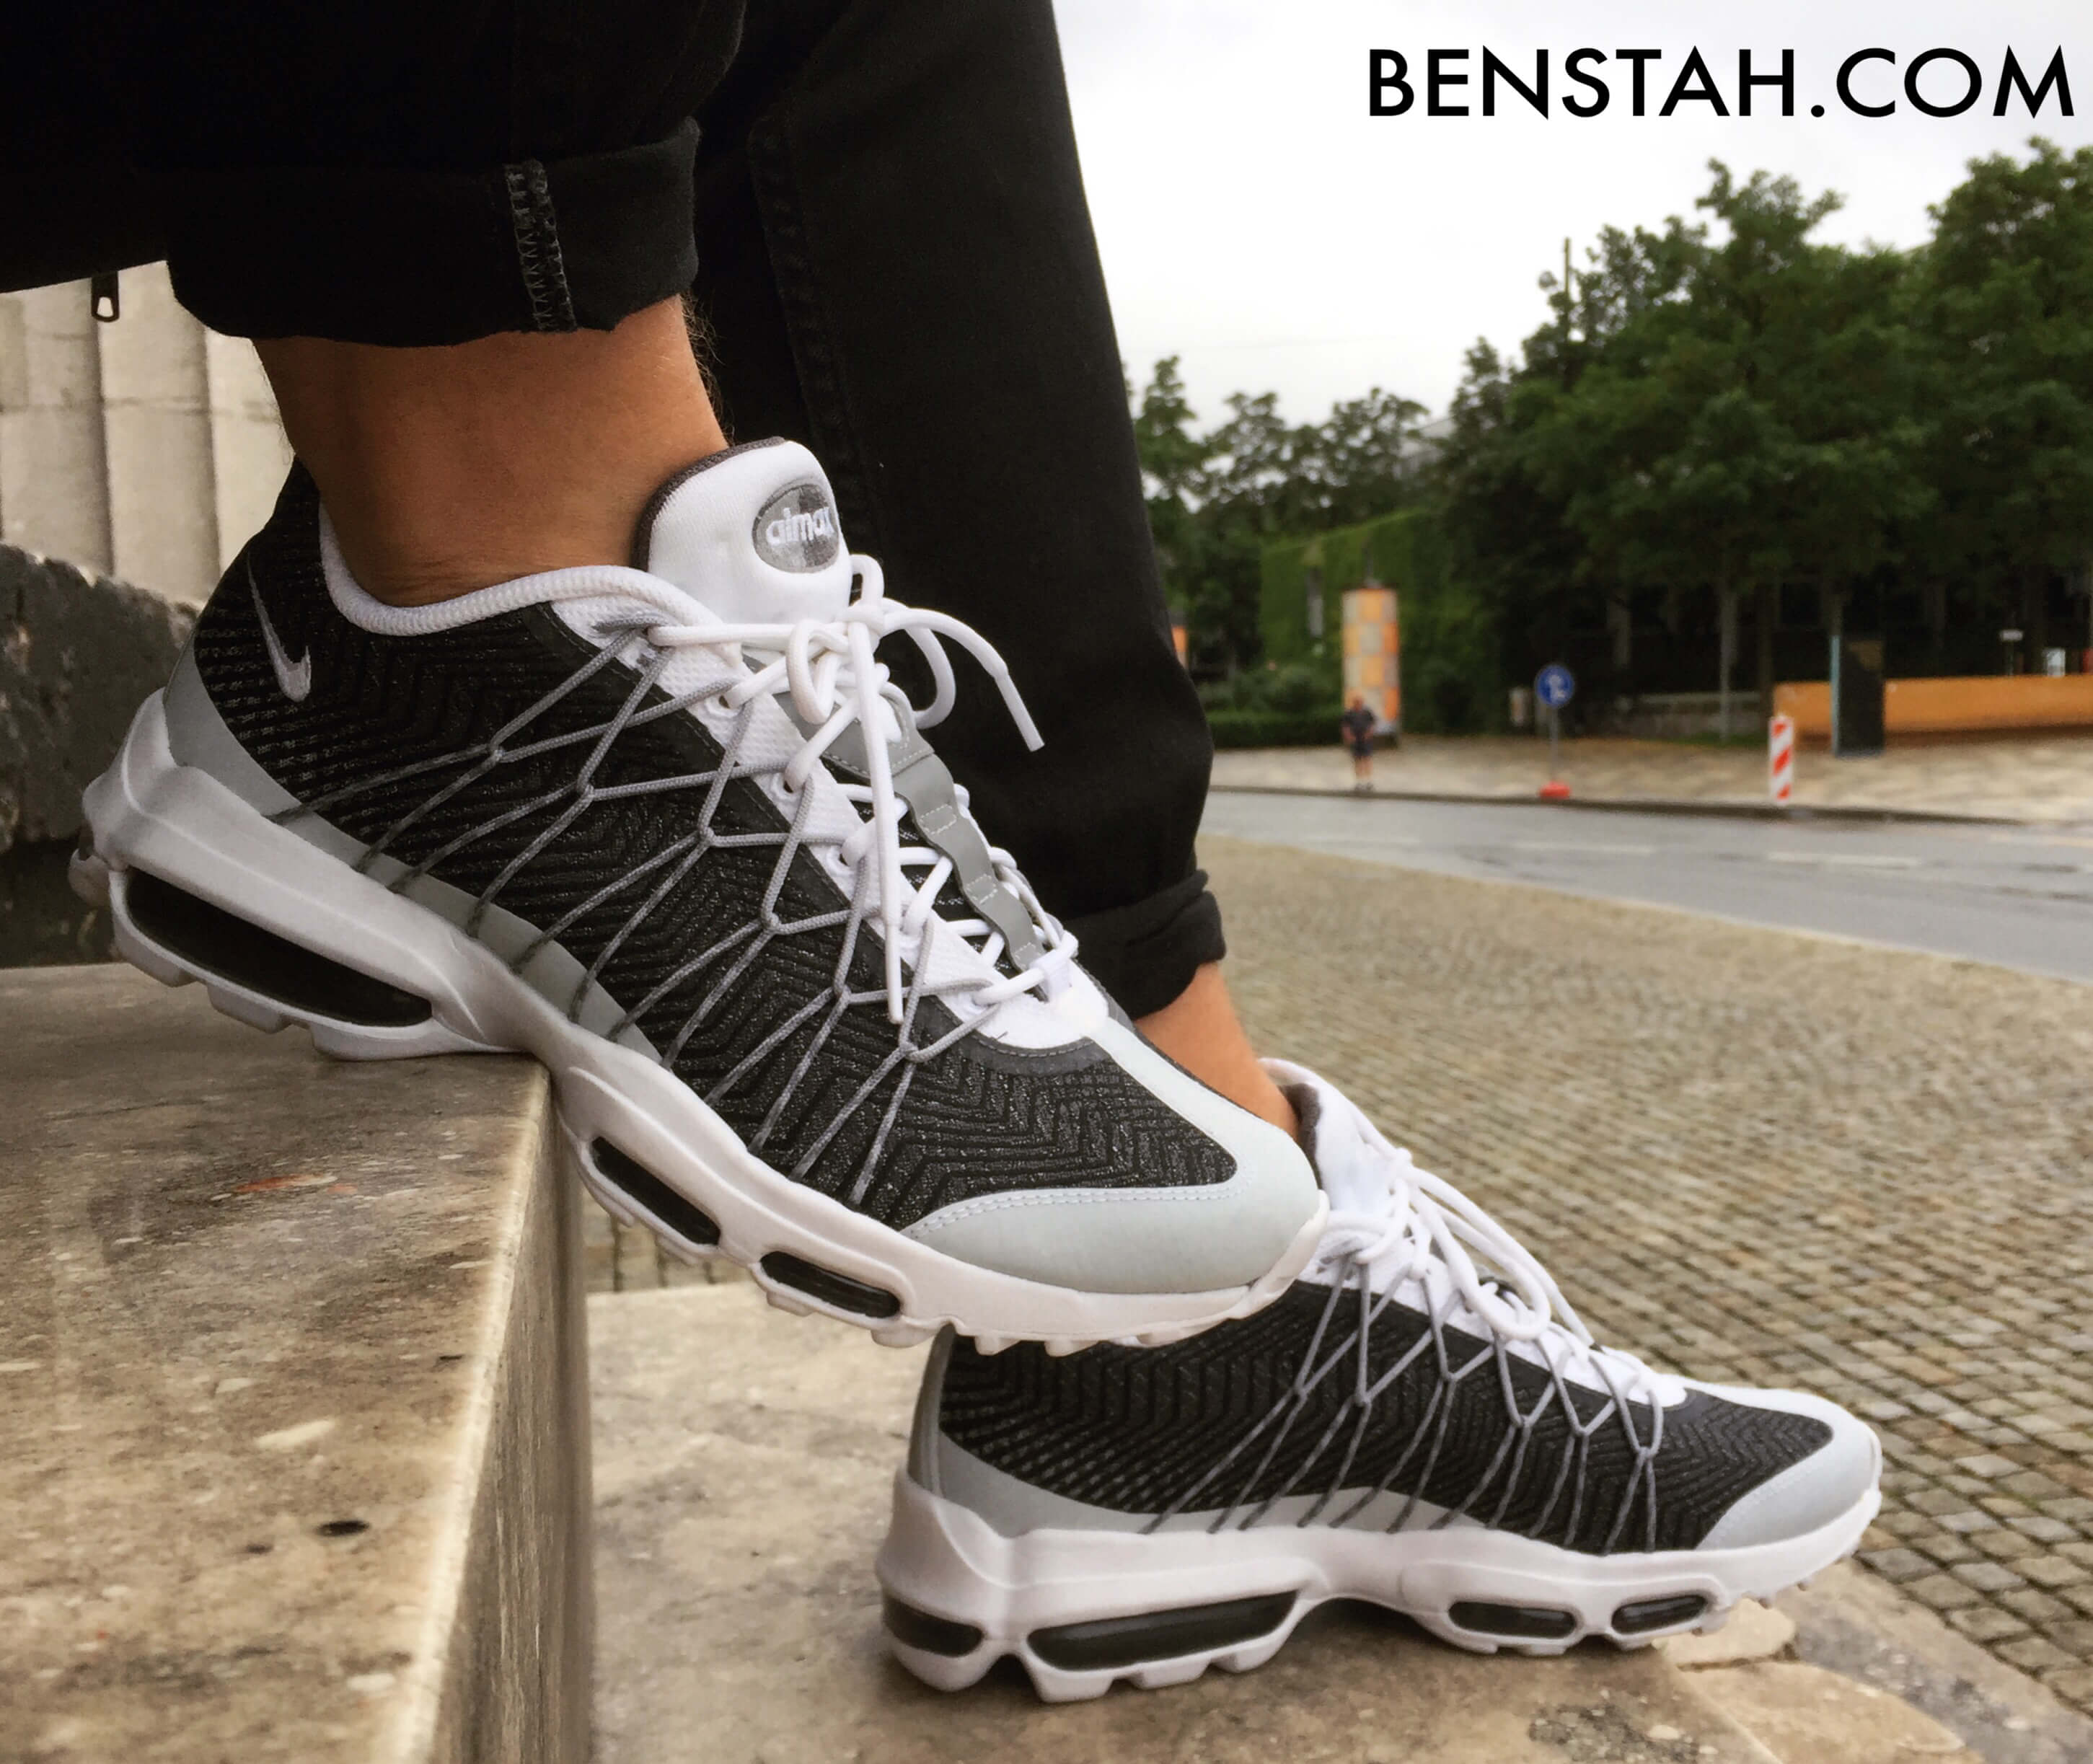 nike-air-max-95-ultra-jacquard-side-view-benstah-onfeet